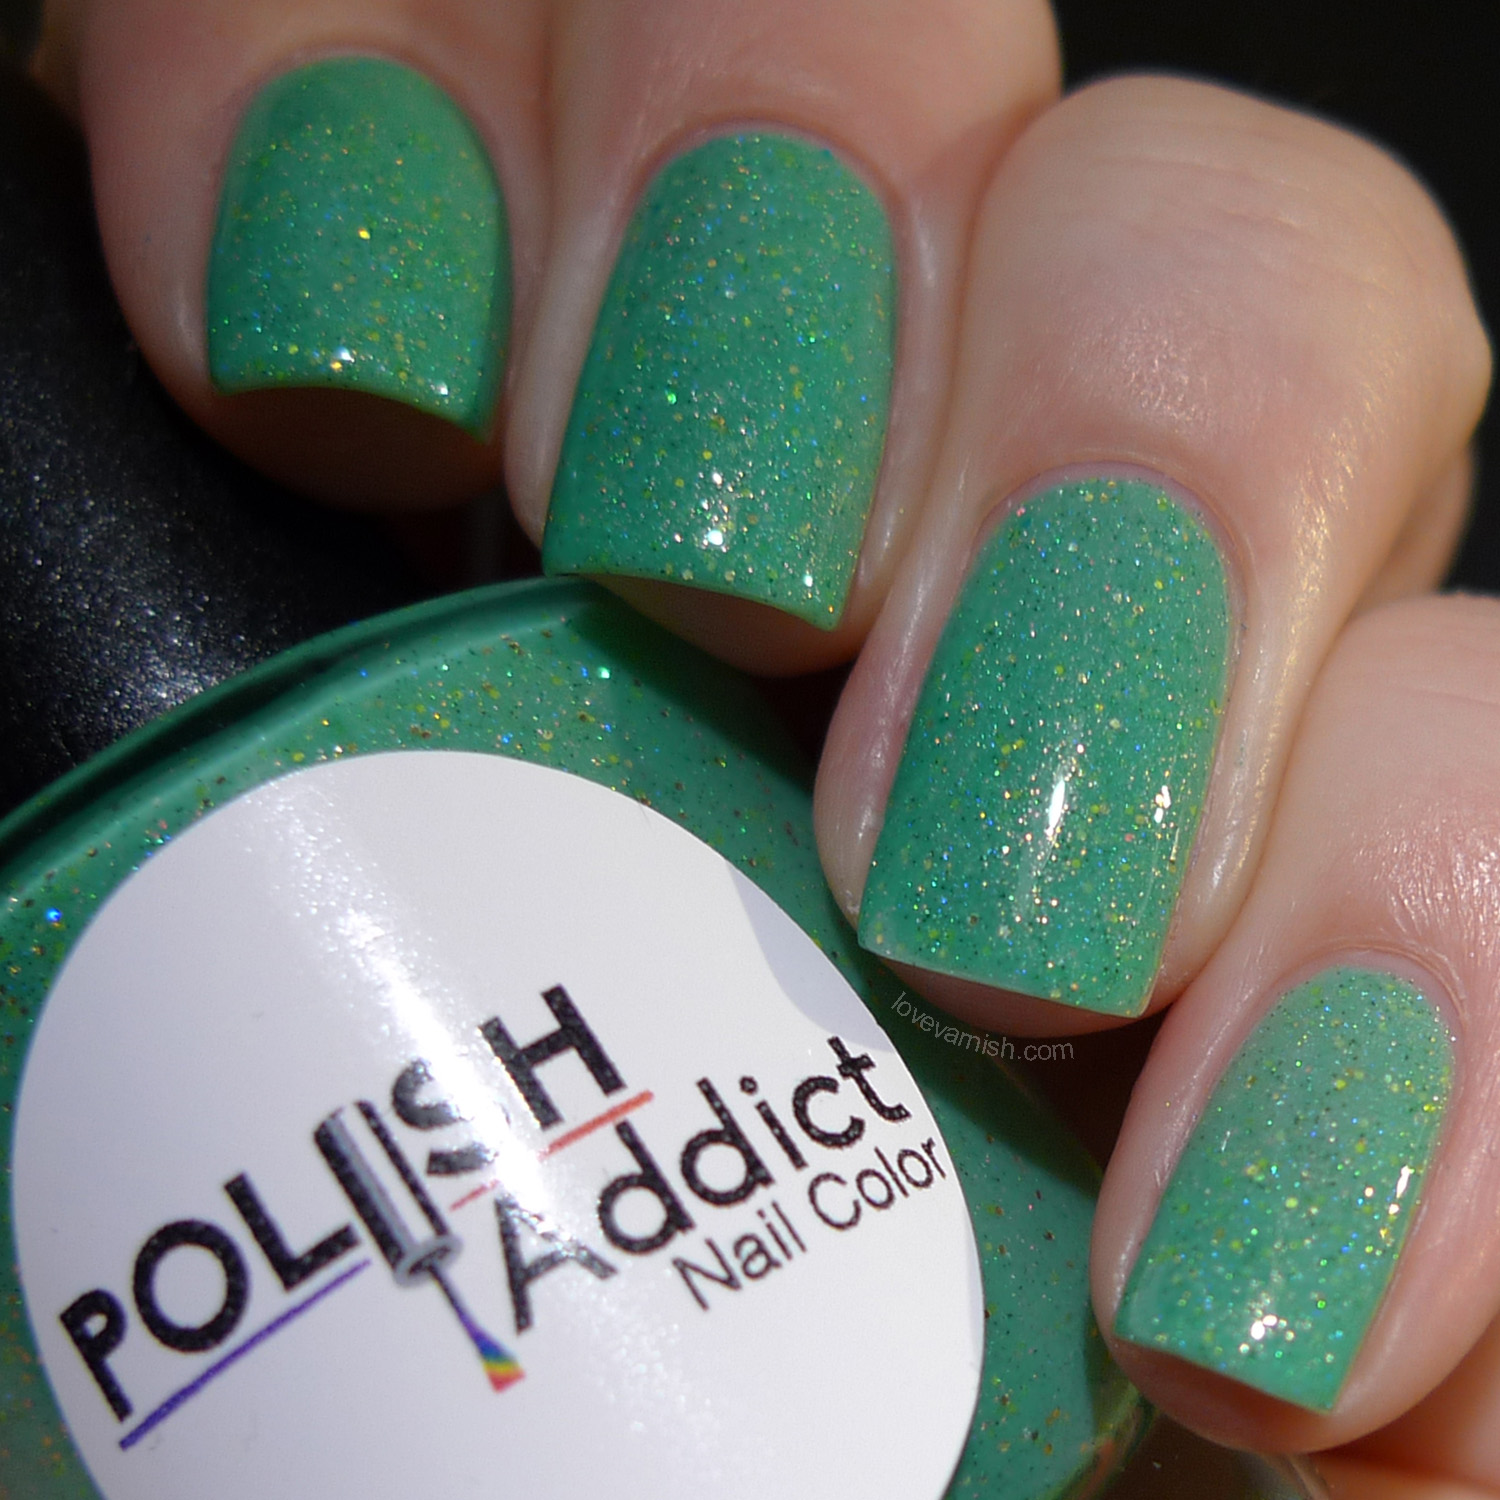 Polish Addict Nail Color Clovers cold